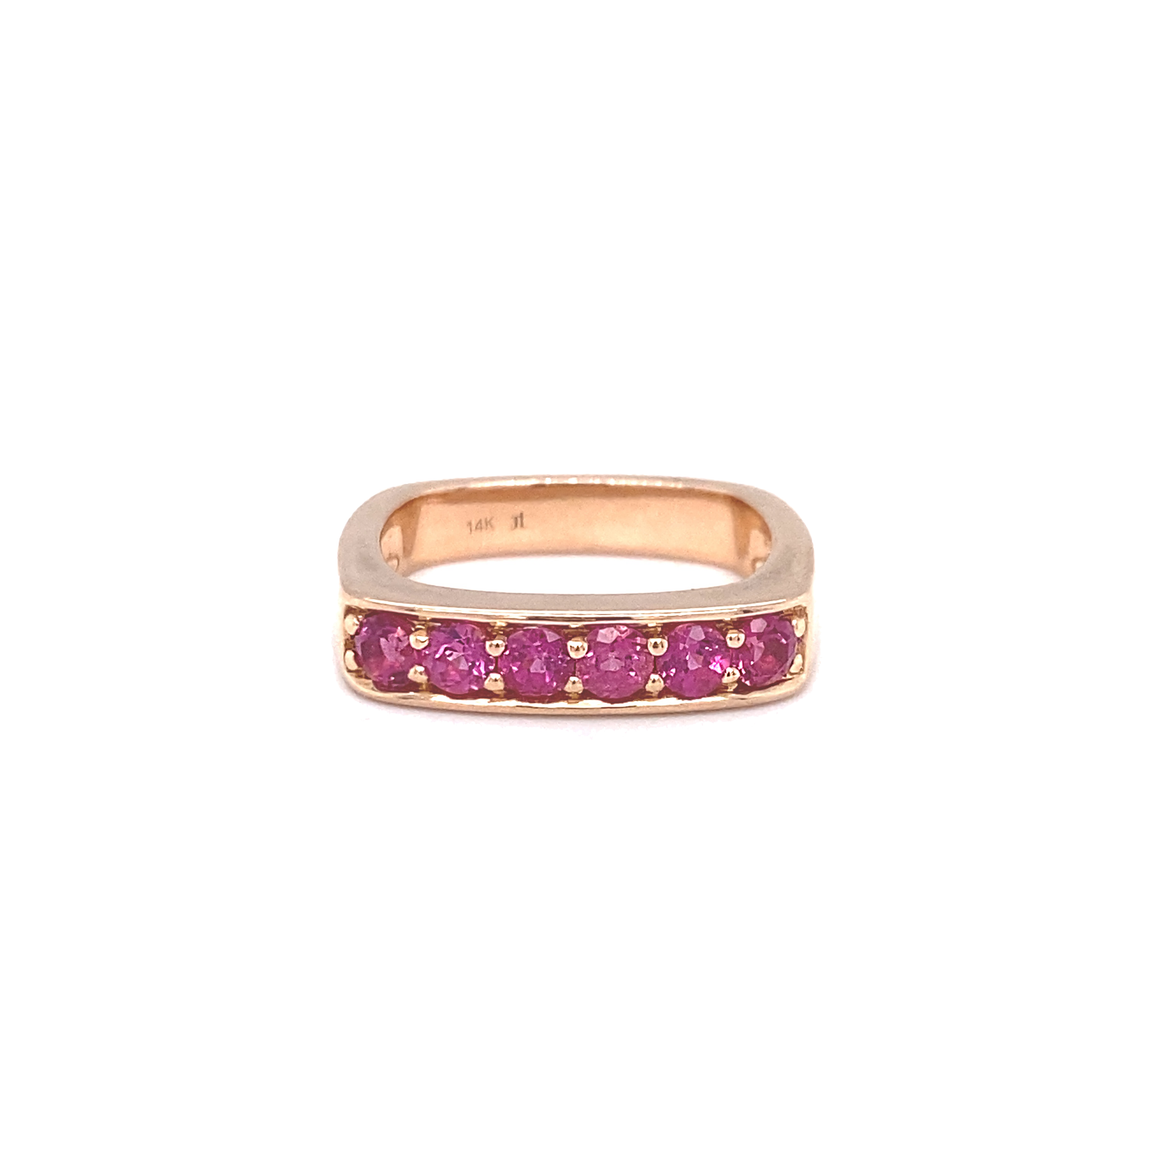 Large Pink Tourmaline Square Stacking Band - Lesley Ann Jewels